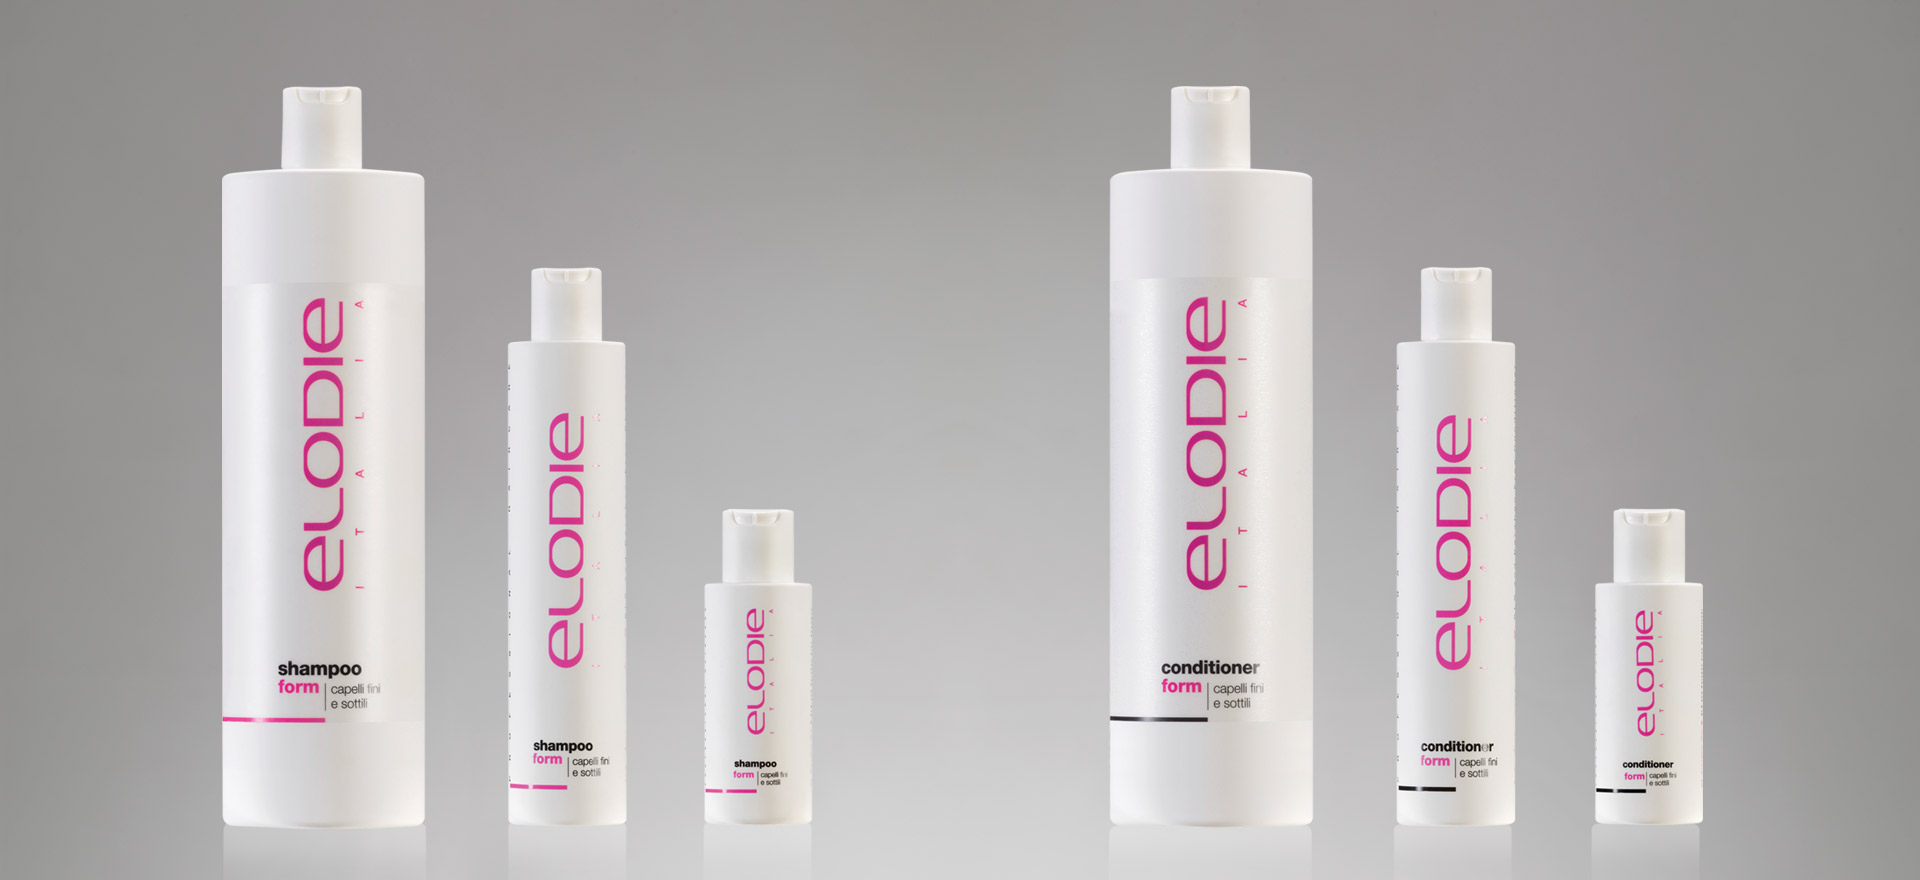 Linea Elodie Shampoo e Conditioner FORM